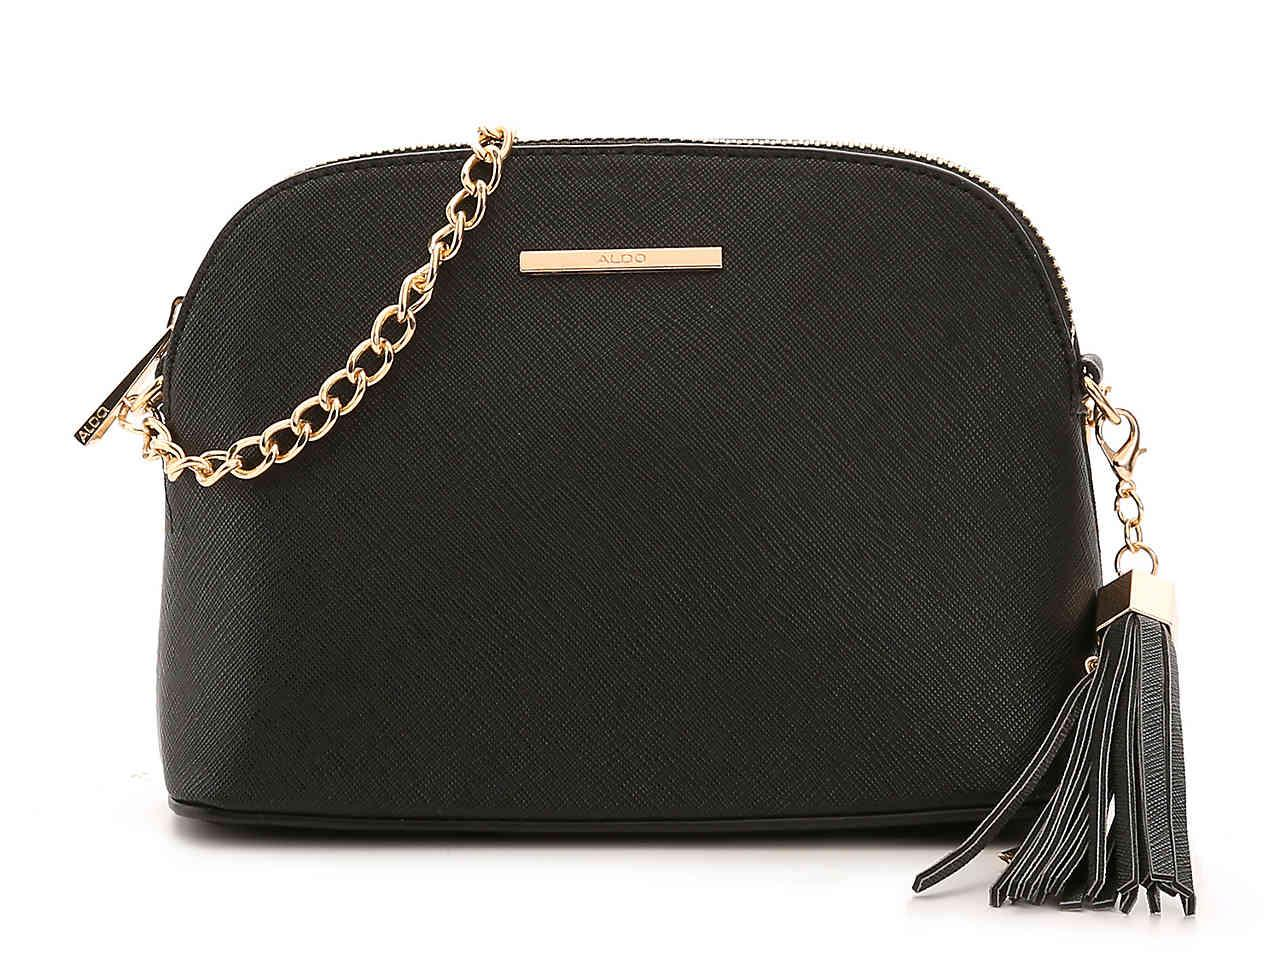 Lyst - ALDO Elroodie Crossbody Bag in Black 2ce36df1ddec0